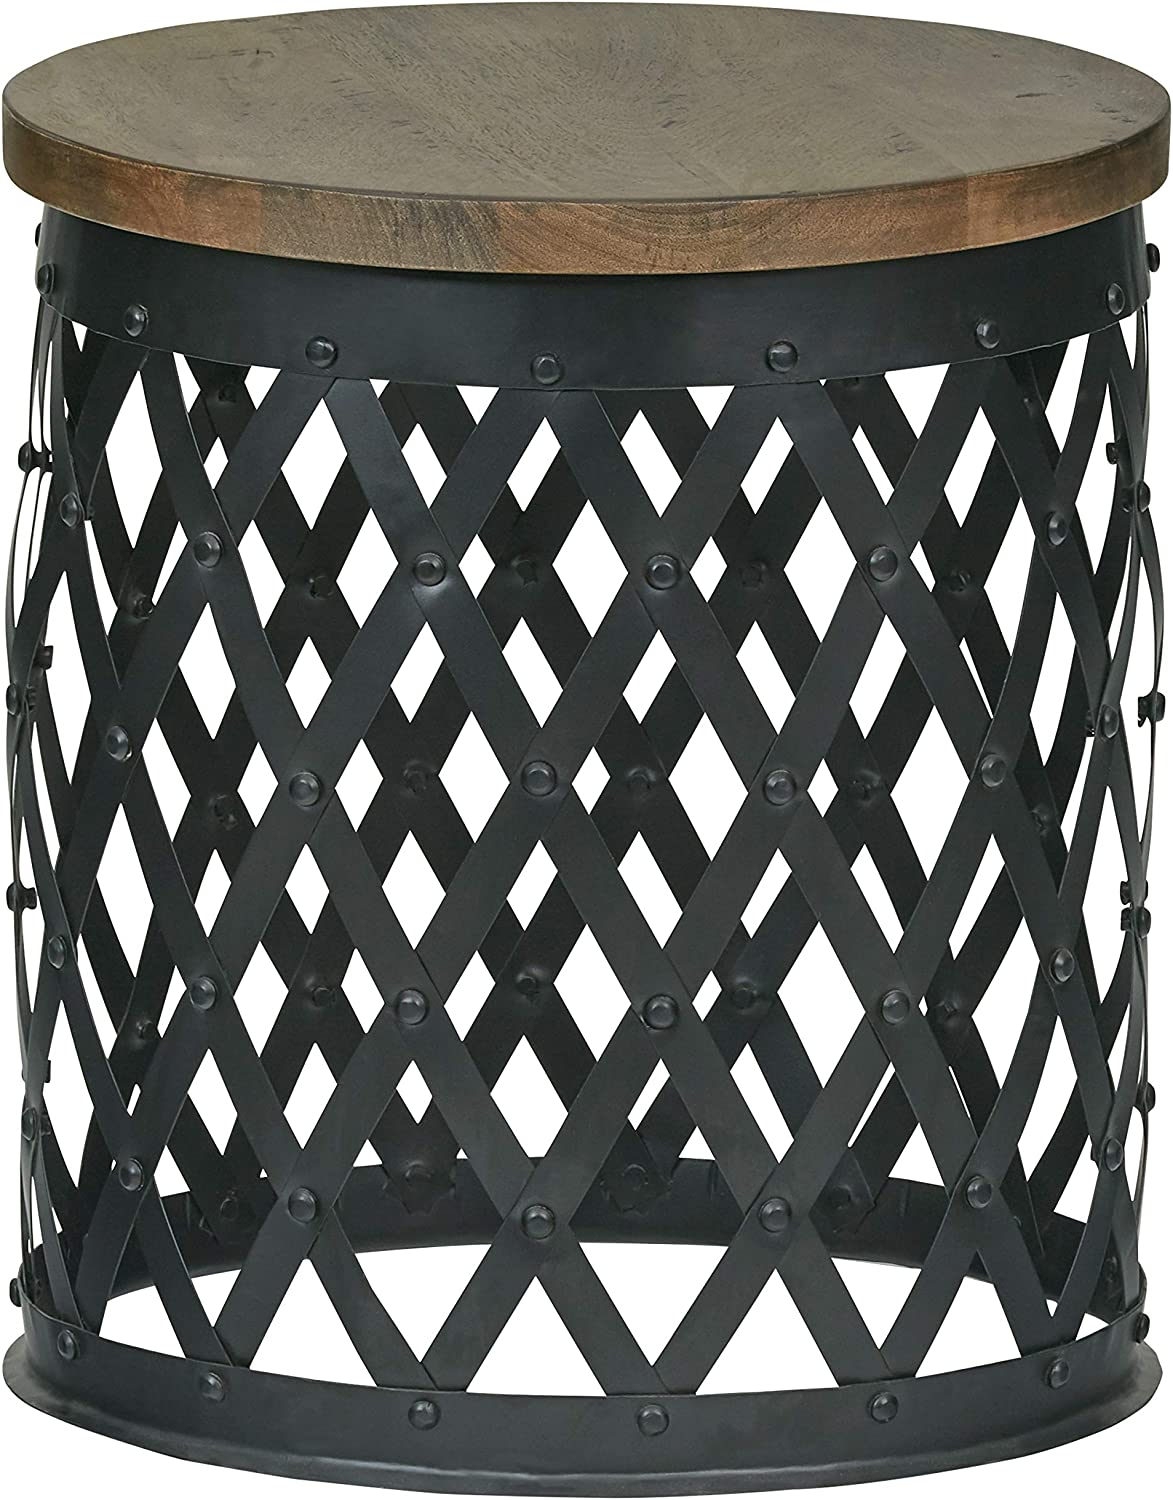 Amazon Brand – Stone & Beam Industrial Side Table with Decorative Metal Base, 15.95